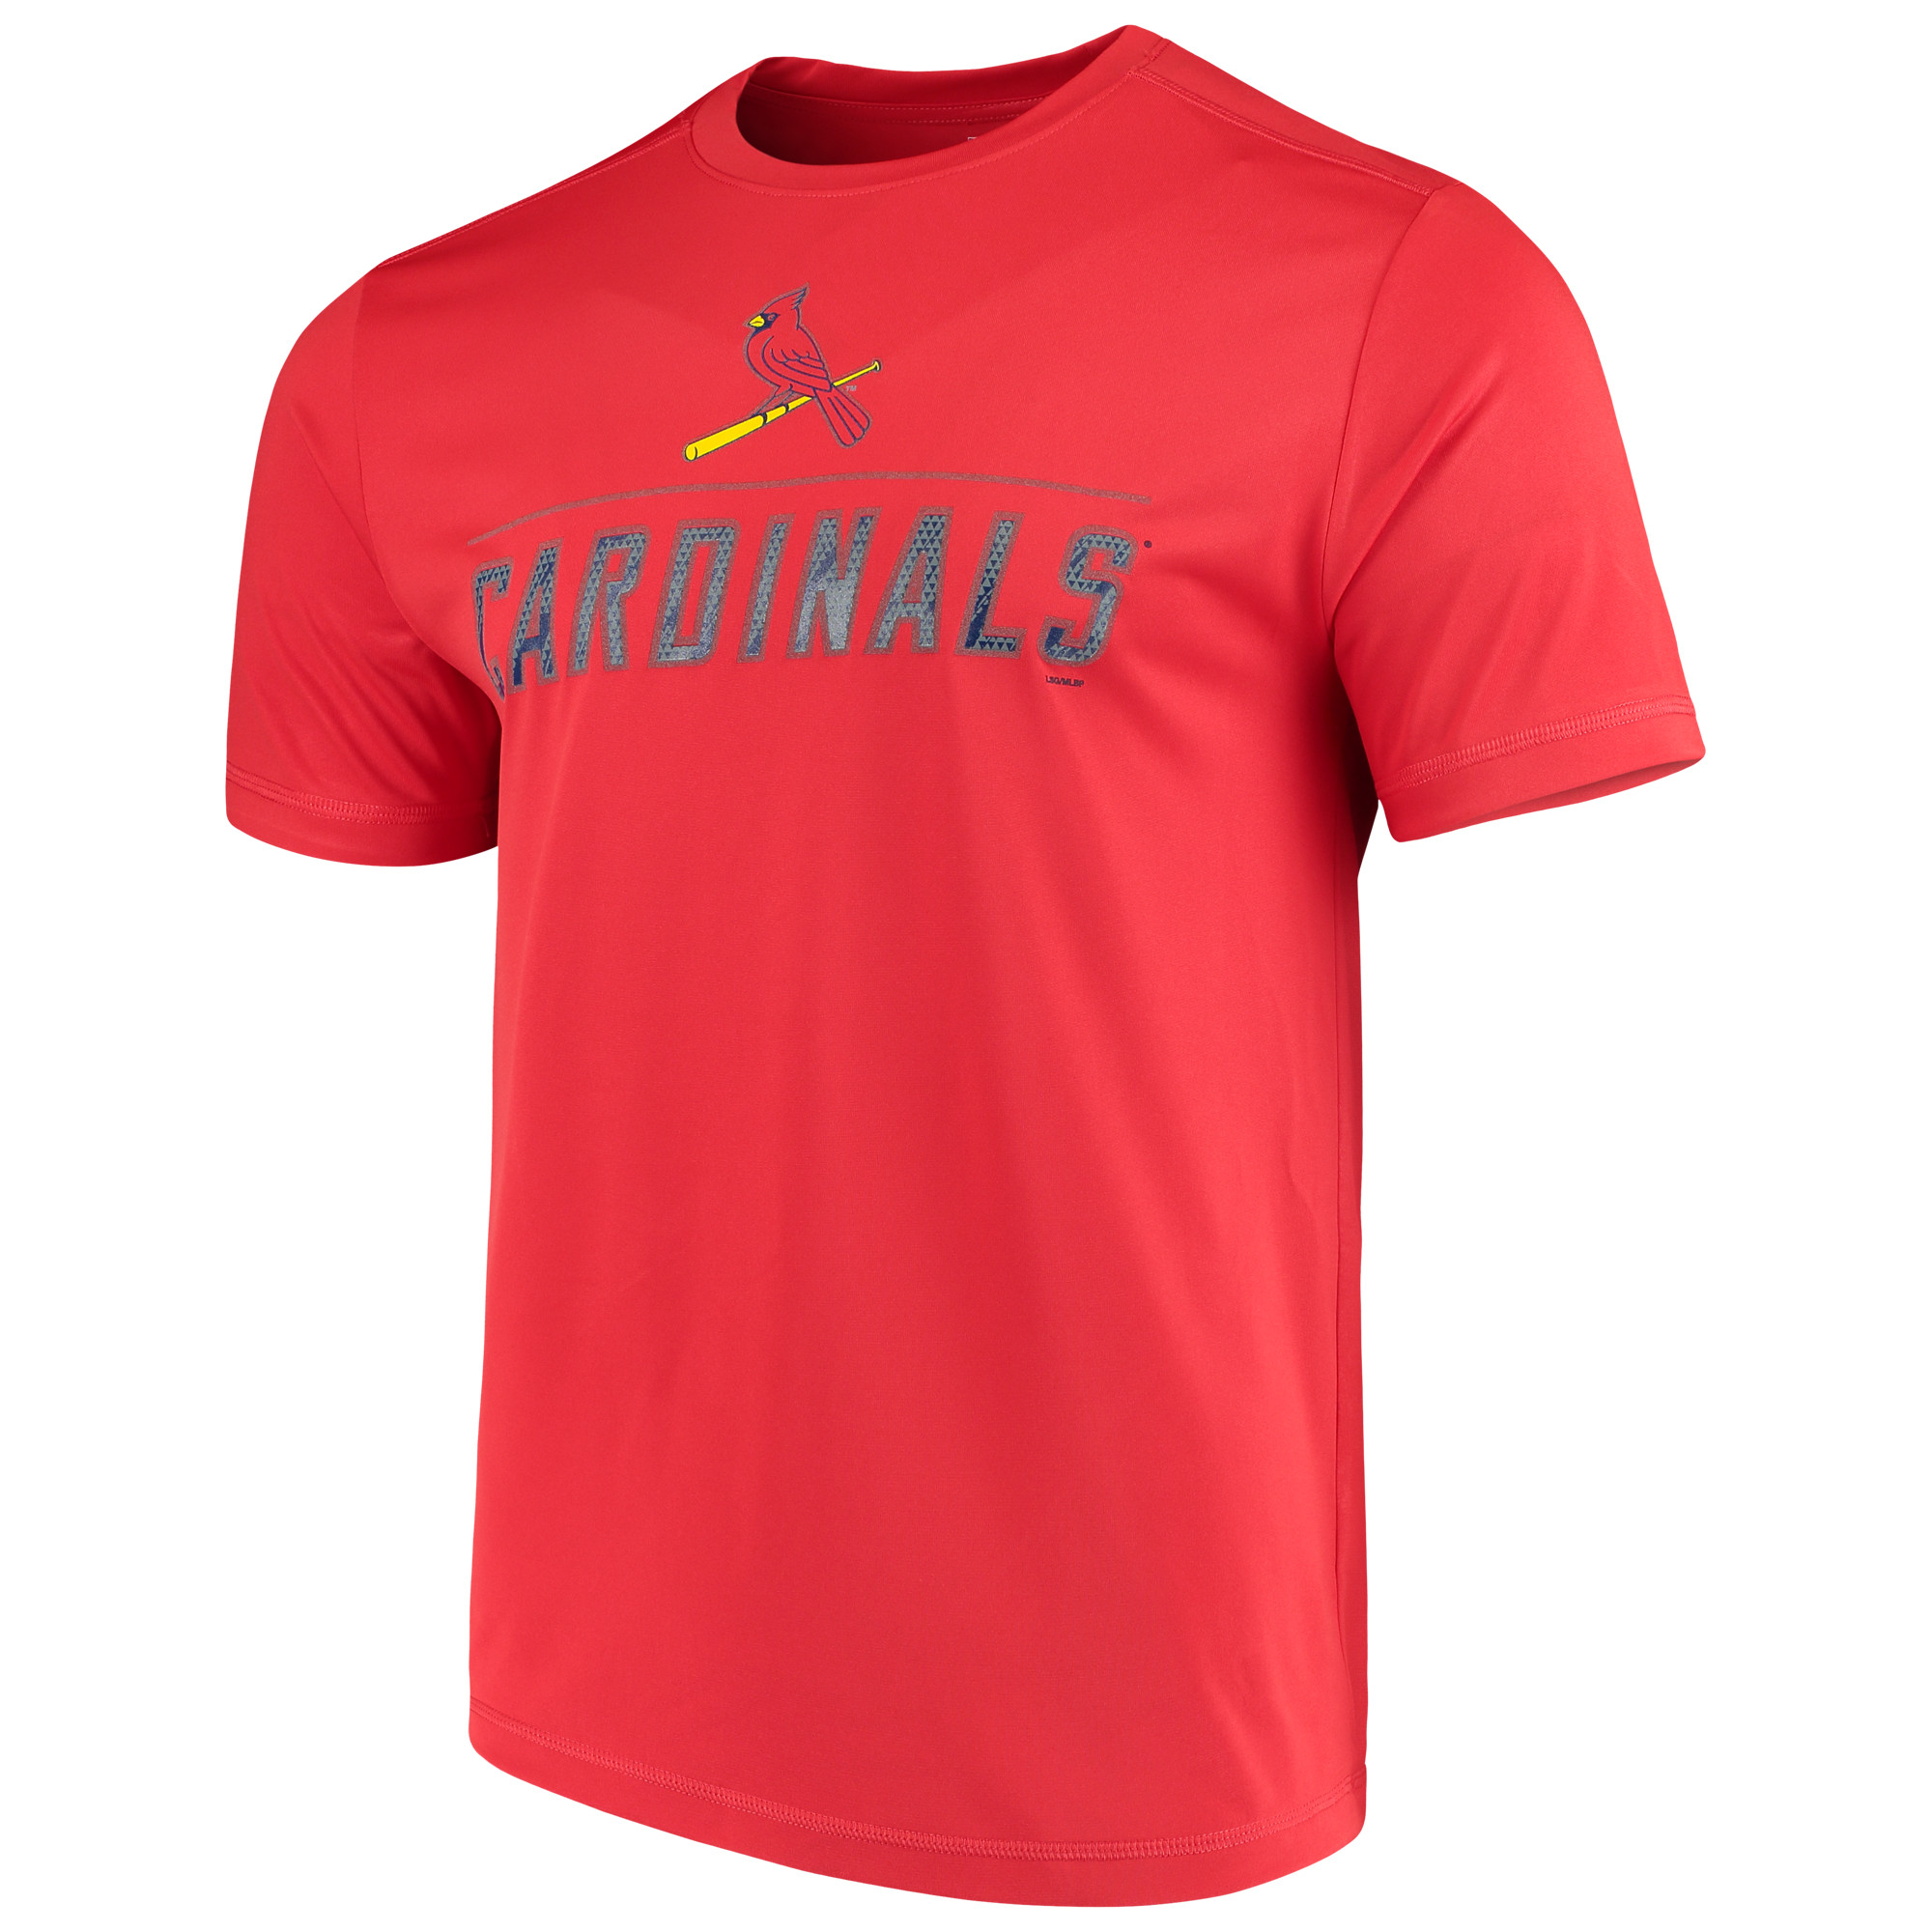 Men's Majestic Red St. Louis Cardinals Big Athletic TX3 Cool Fabric T-Shirt